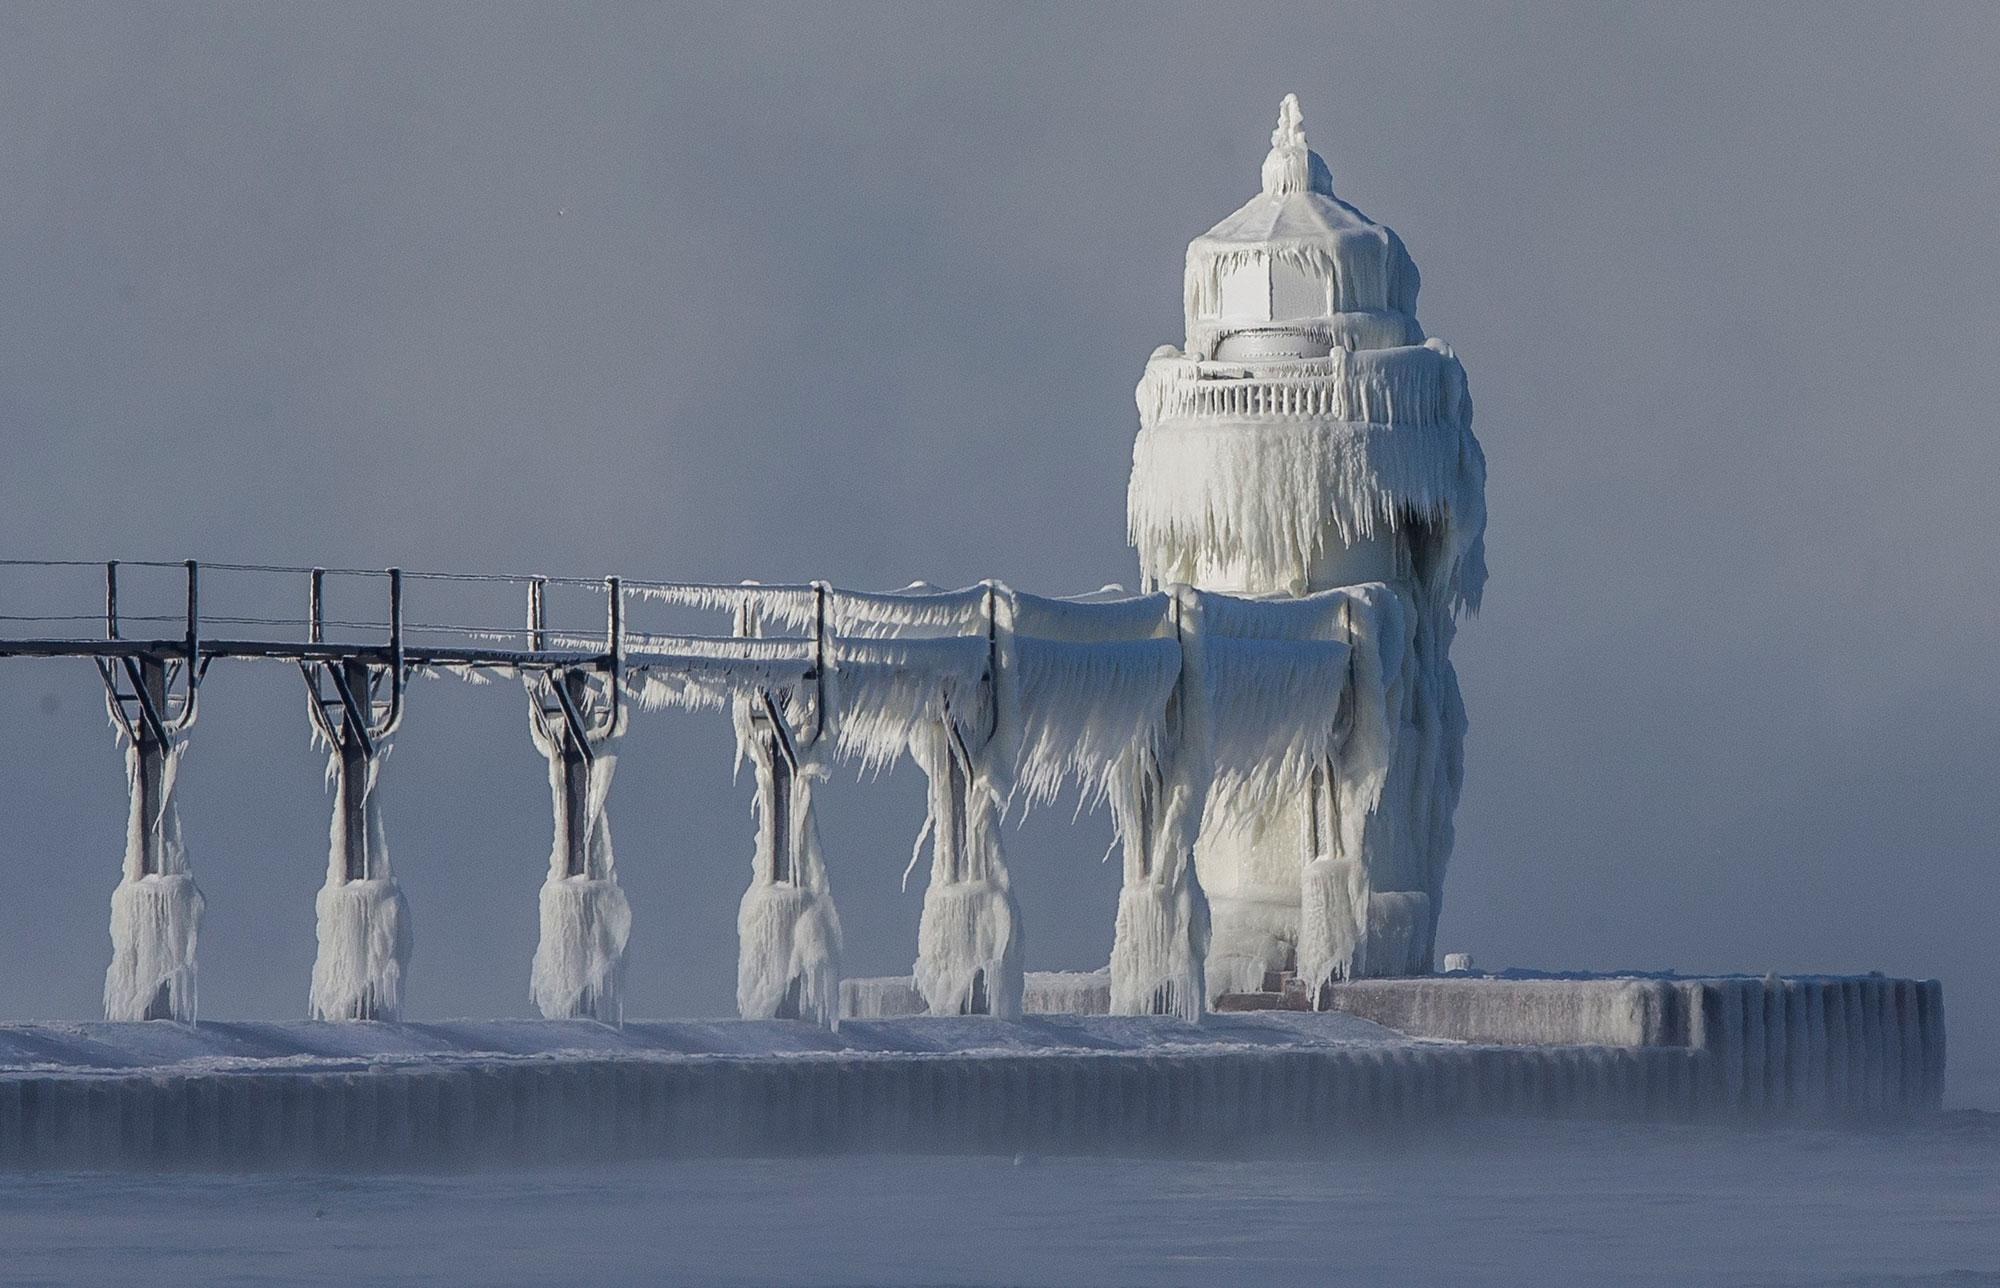 <p>Extreme cold conditions cause ice accretions to cover the St. Joseph lighthouse and pier, on the southeastern shoreline of Lake Michigan, on Monday, Dec. 19, 2016, in St. Joseph, Mich. (Photo: Robert Franklin/South Bend Tribune via AP) </p>